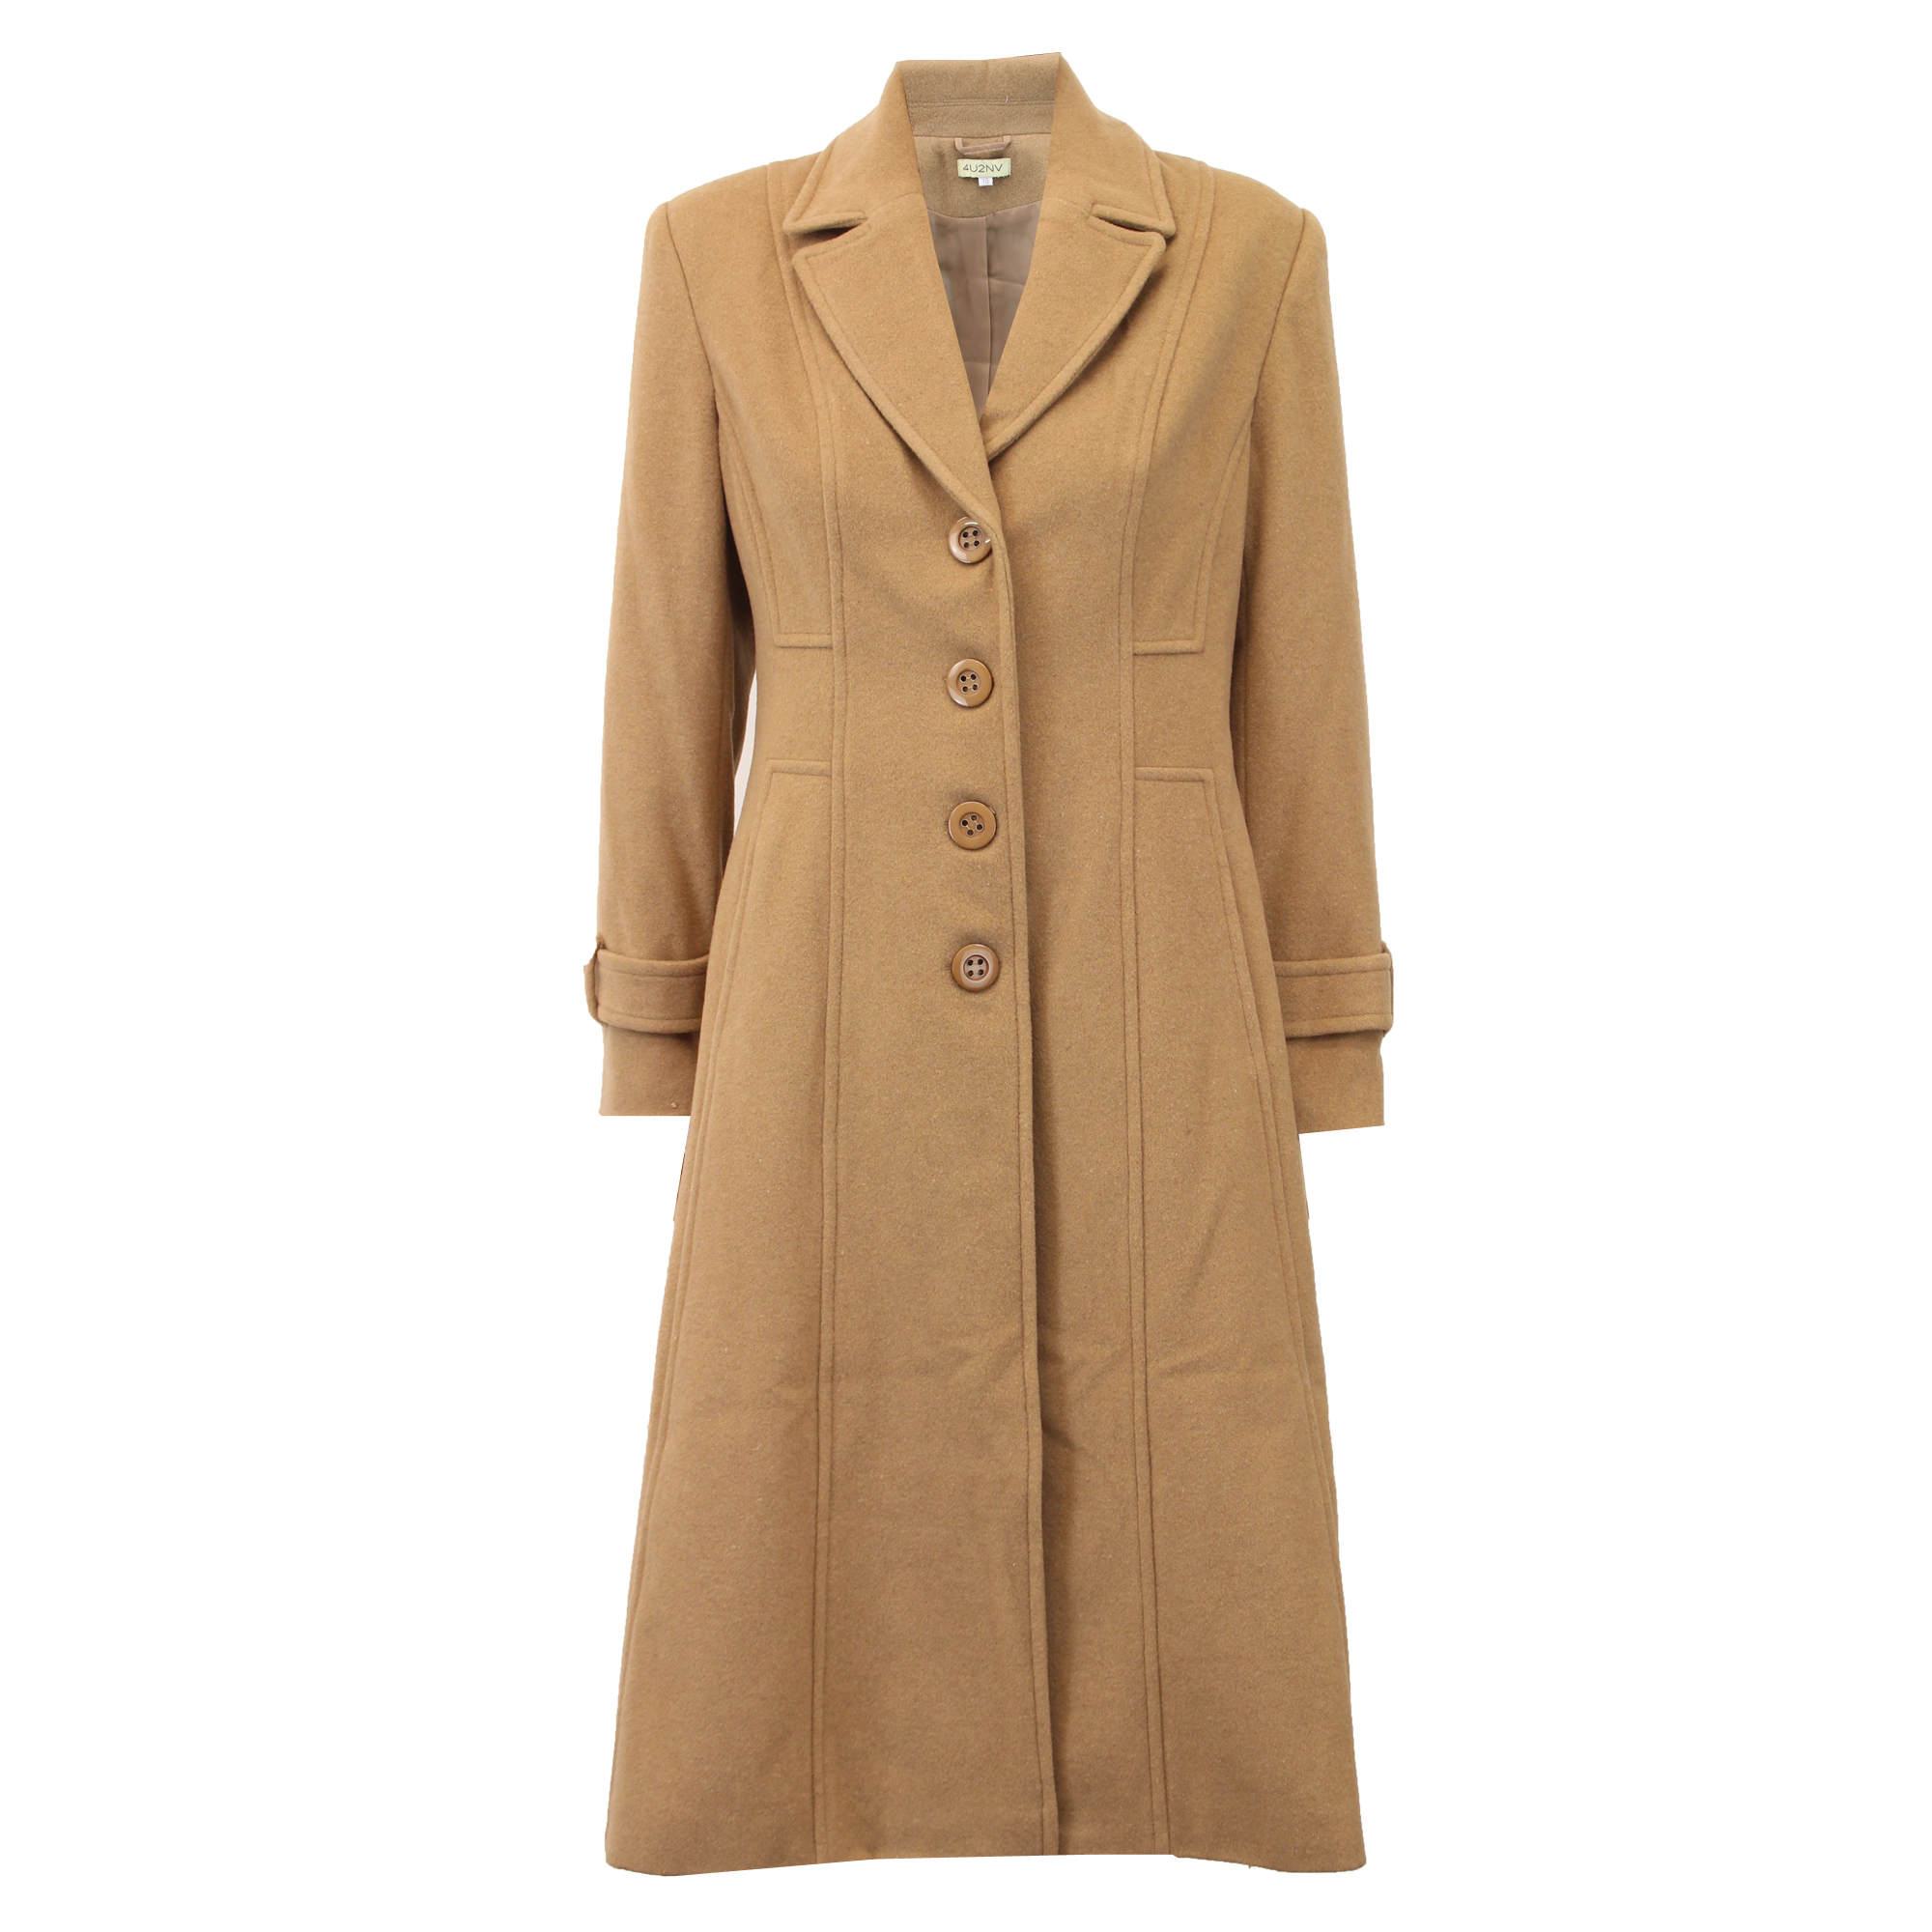 Ladies Wool Cashmere Coat Womens Jacket Outerwear Trench